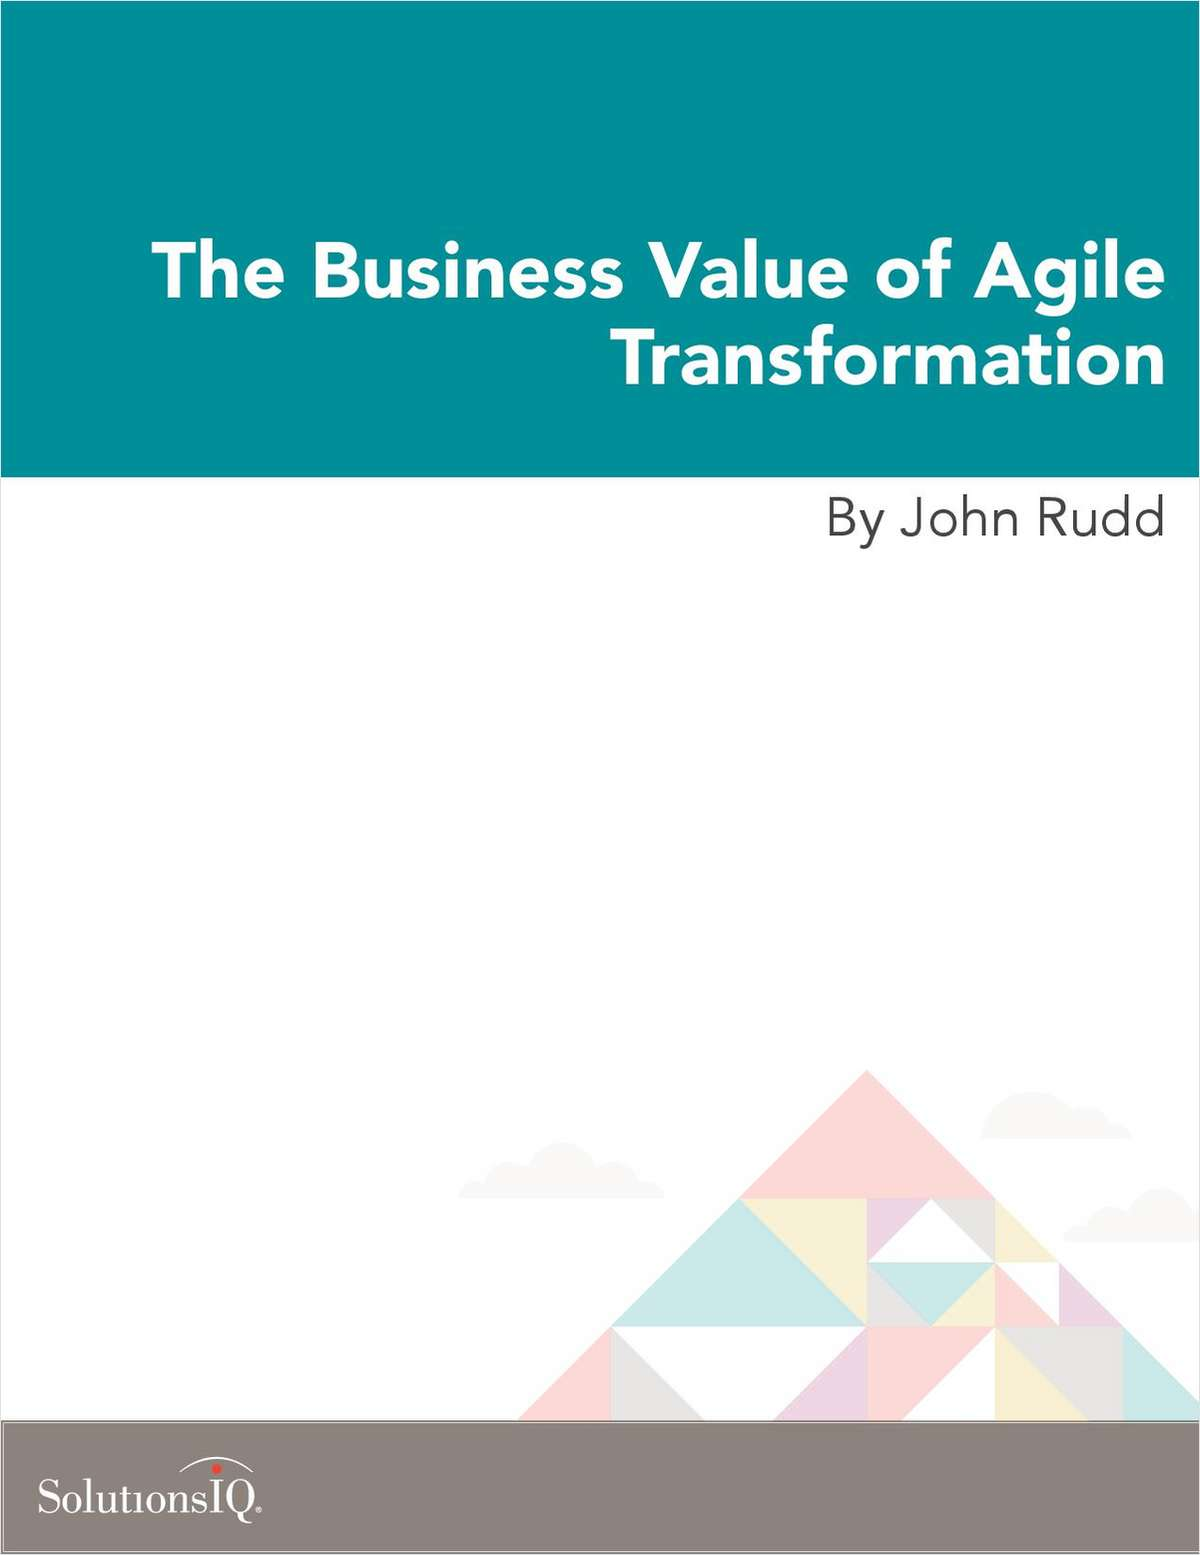 The Business Value of Agile Transformation